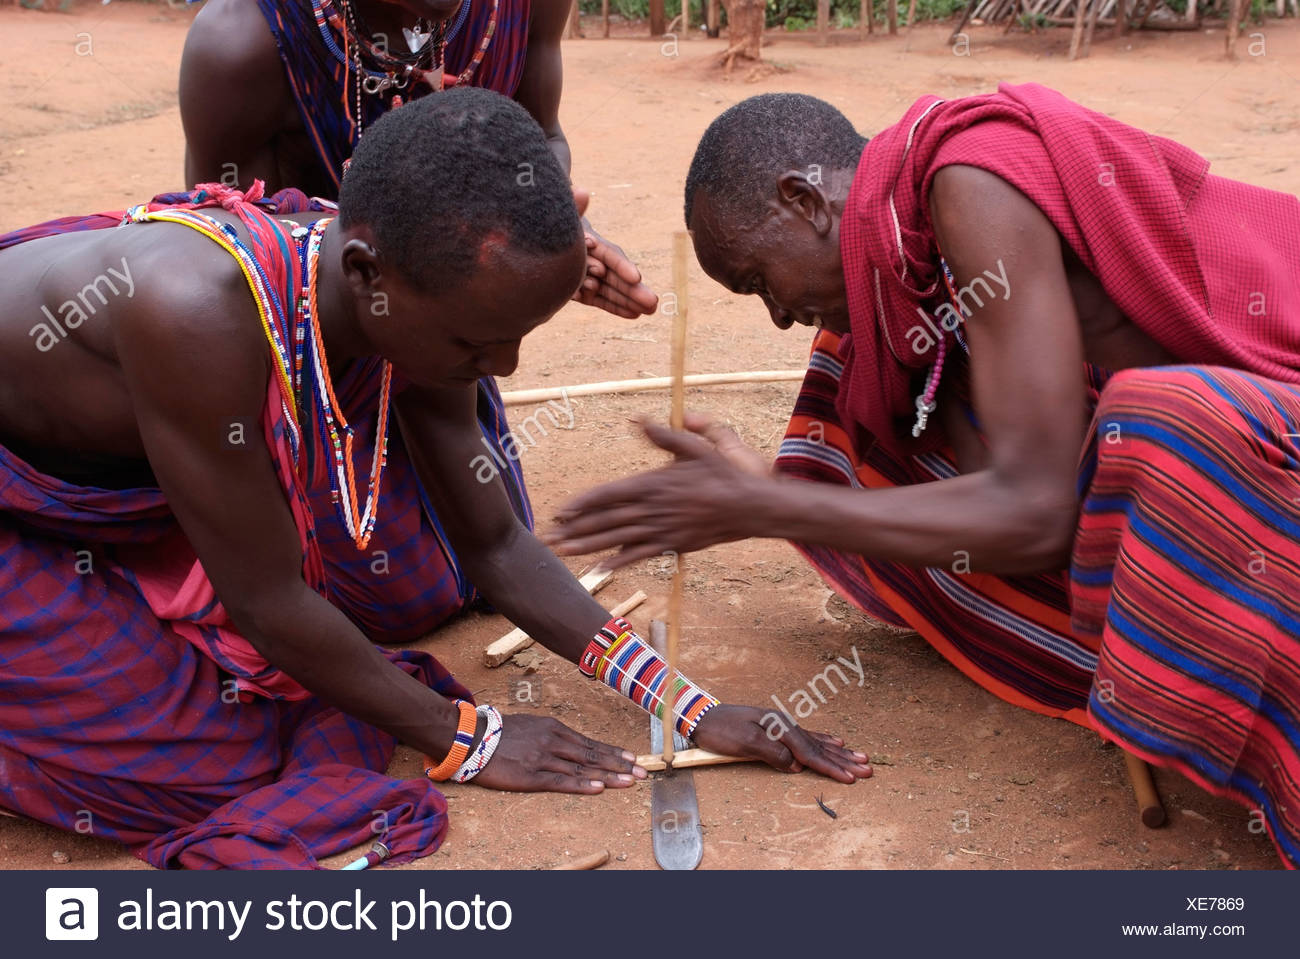 Massai ignite a fire in a traditional manner, Kanya, Africa - Stock Image